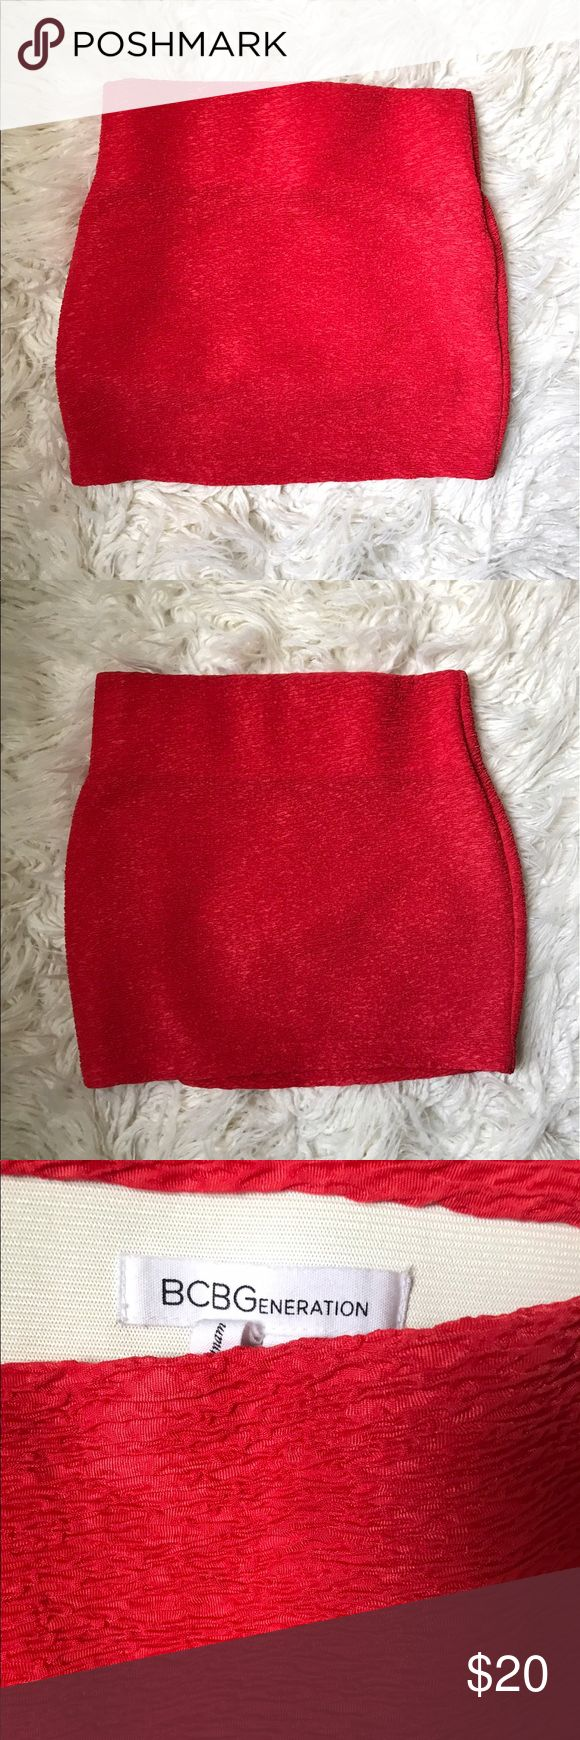 "BCBGeneration Stretch Pullover Mini Skirt Size S BCBGeneration Stretch Mini Skirt in a beautiful cranberry color.  In excellent condition.  	•	Size: Small 	•	Banded waistline 	•	Length: 15.5"" 	•	Waist: 28"" 	•	Fabric: 100% polyester 	•	Care: Machine wash cold BCBGeneration Skirts Mini"